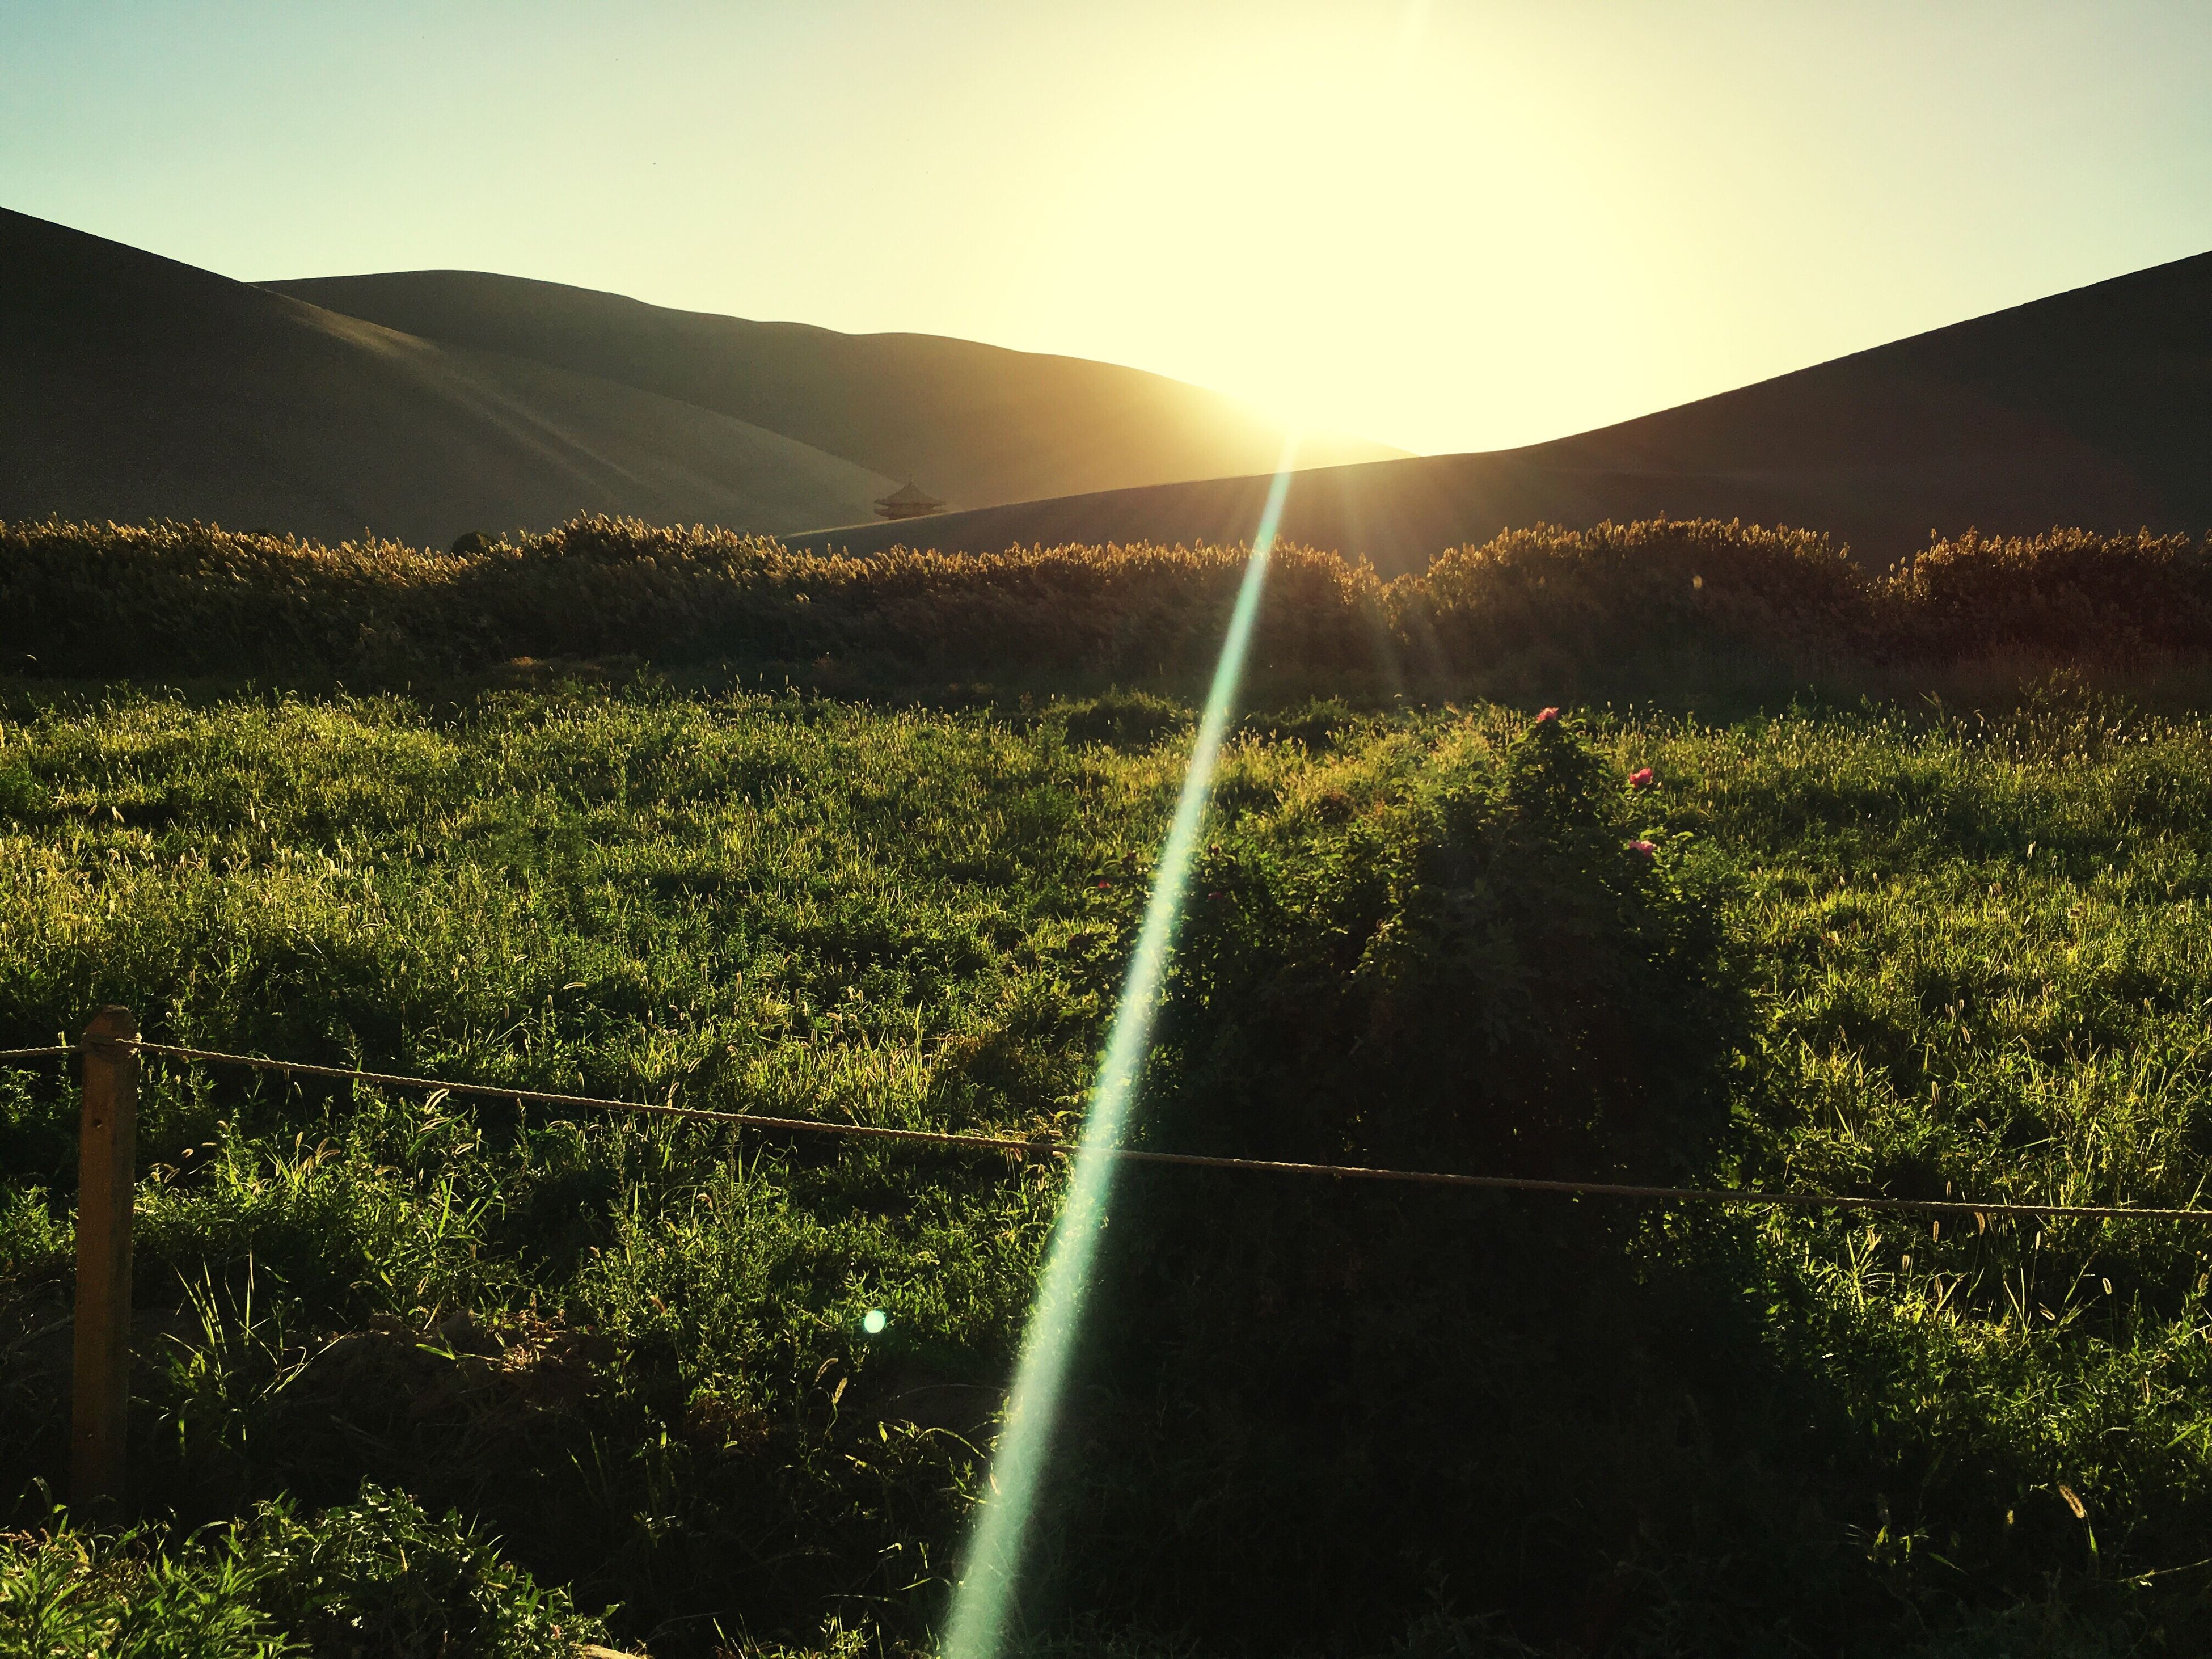 tranquil scene, mountain, landscape, scenics, tranquility, sunlight, beauty in nature, sunbeam, sun, lens flare, green color, nature, clear sky, growth, field, idyllic, remote, plant, non-urban scene, farm, crop, mountain range, outdoors, rural scene, agriculture, green, sky, solitude, countryside, grassy, plantation, no people, lush foliage